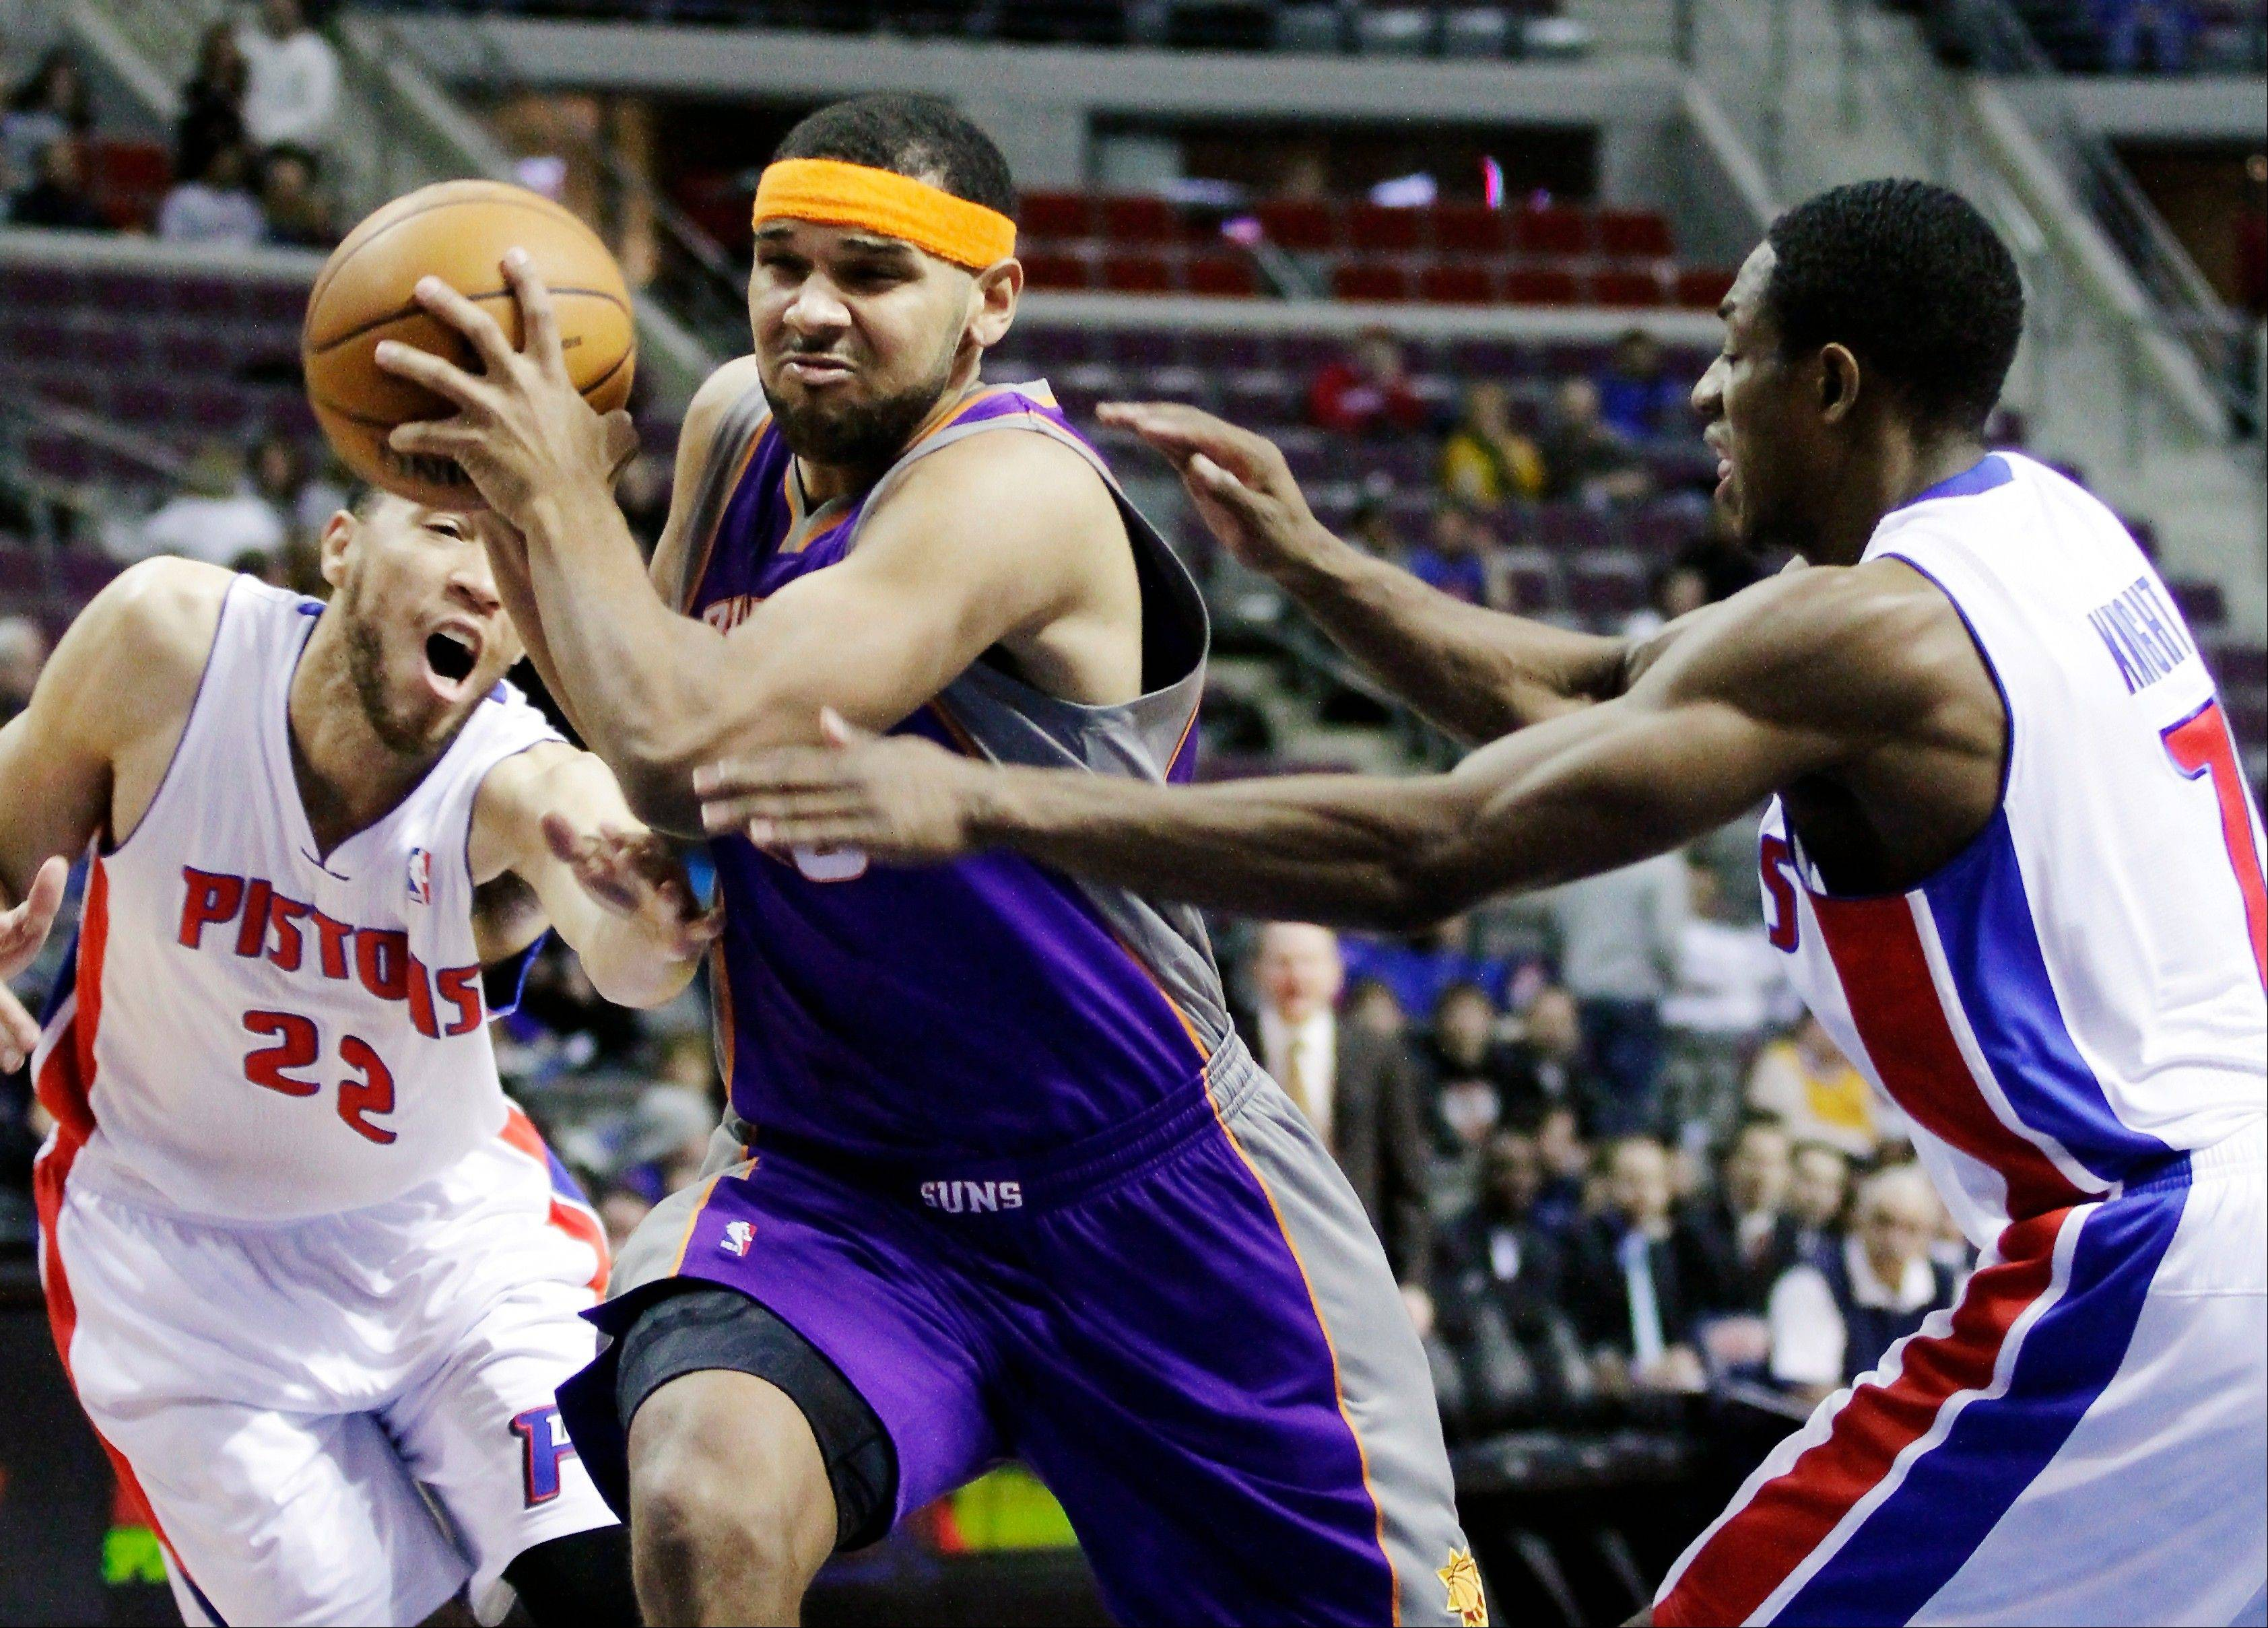 Phoenix Suns guard Jared Dudley drives to the basket between Detroit Pistons forward Tayshaun Prince (22) and guard Brandon Knight (7) Wednesday during the first half in Auburn Hills, Mich.